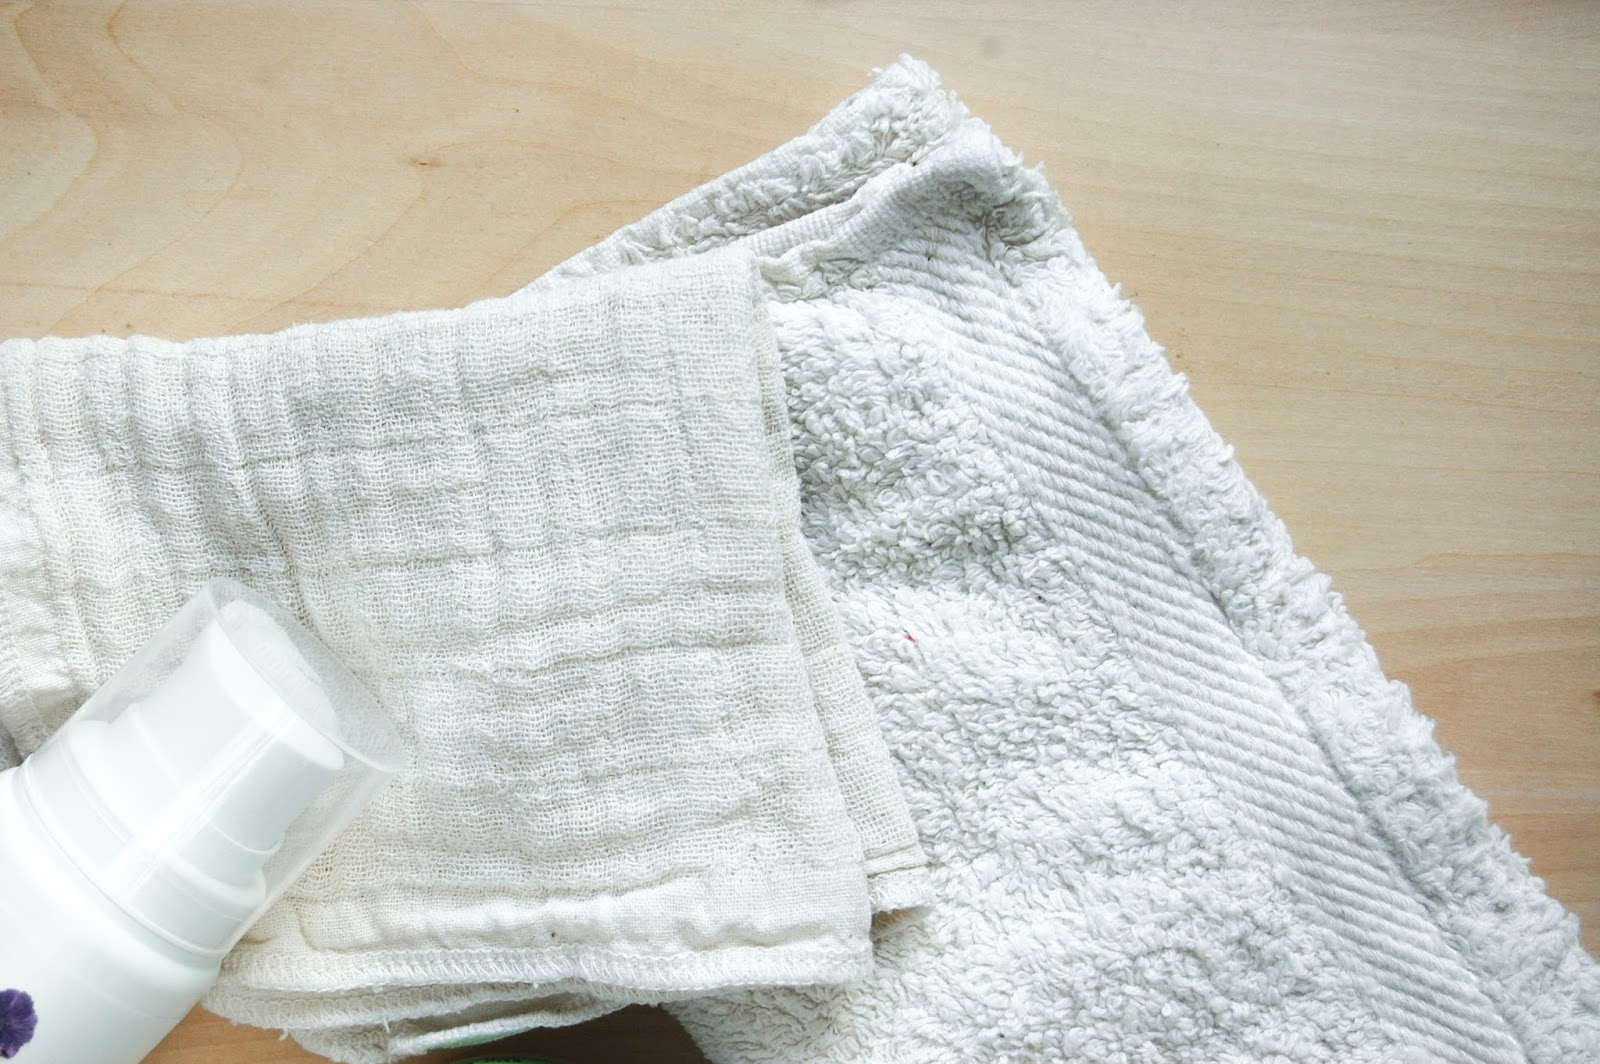 Washcloth, Muslin Cloth